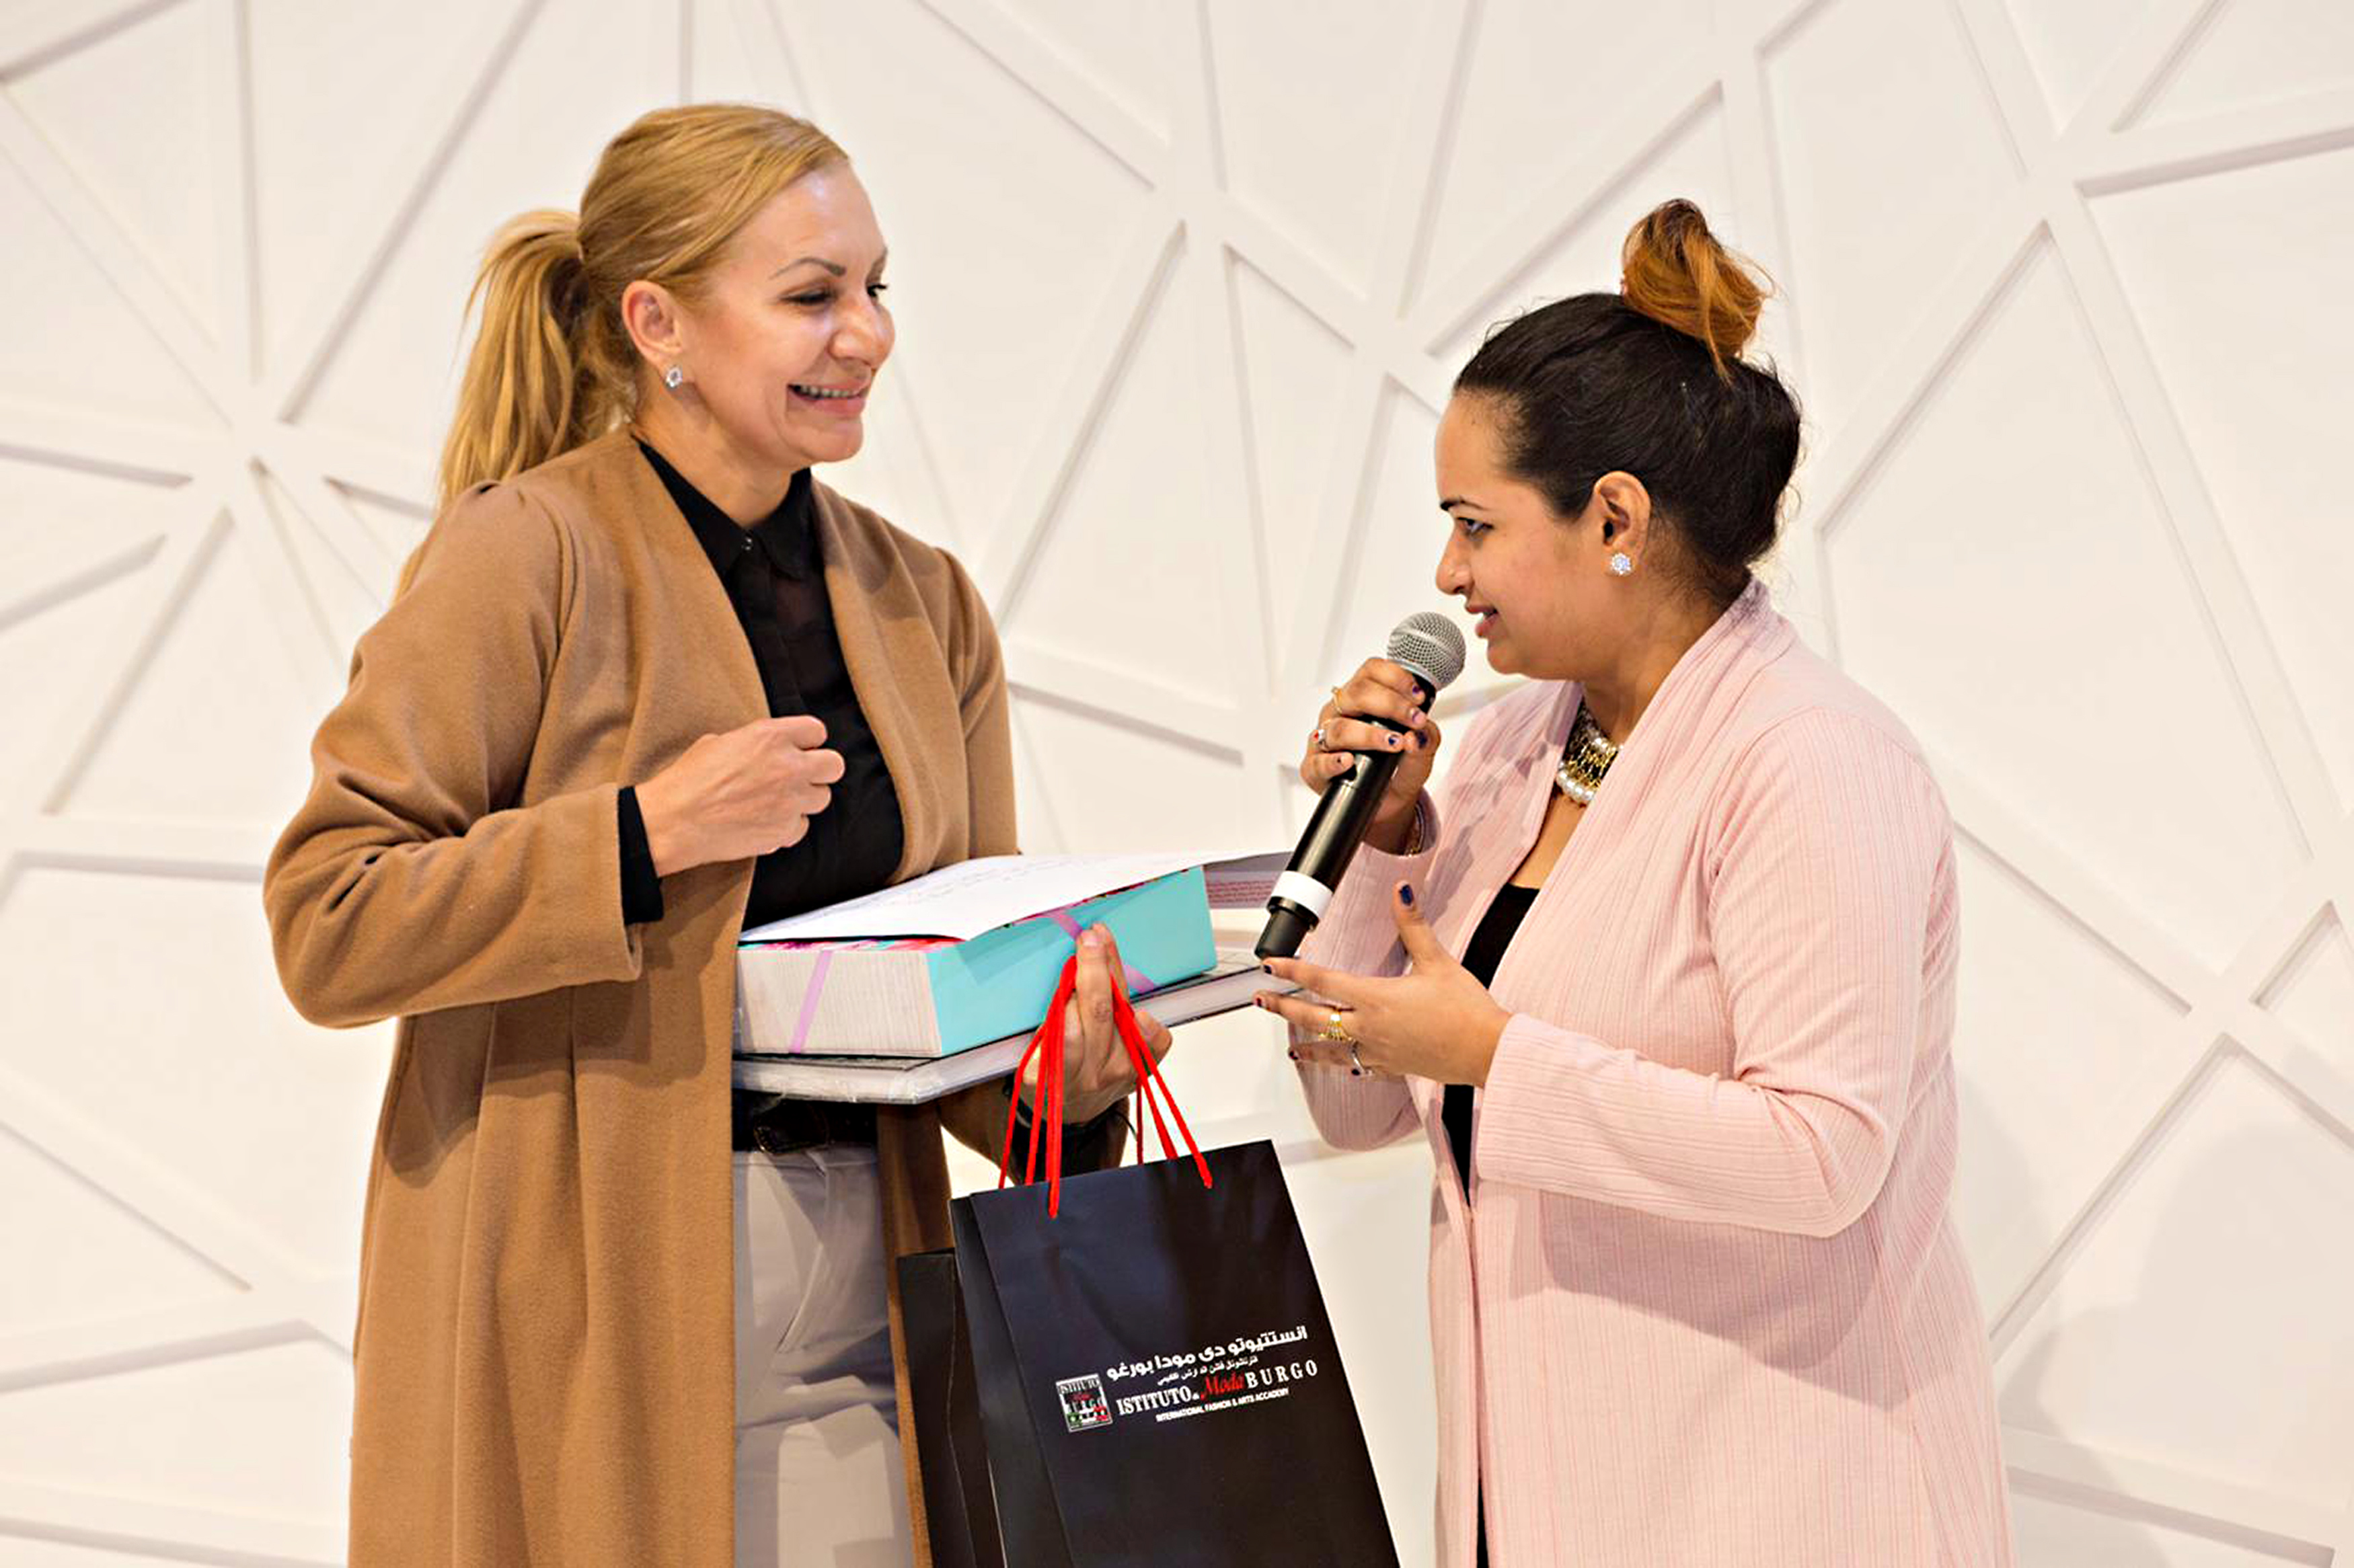 Qatar Fashion School Ceremony